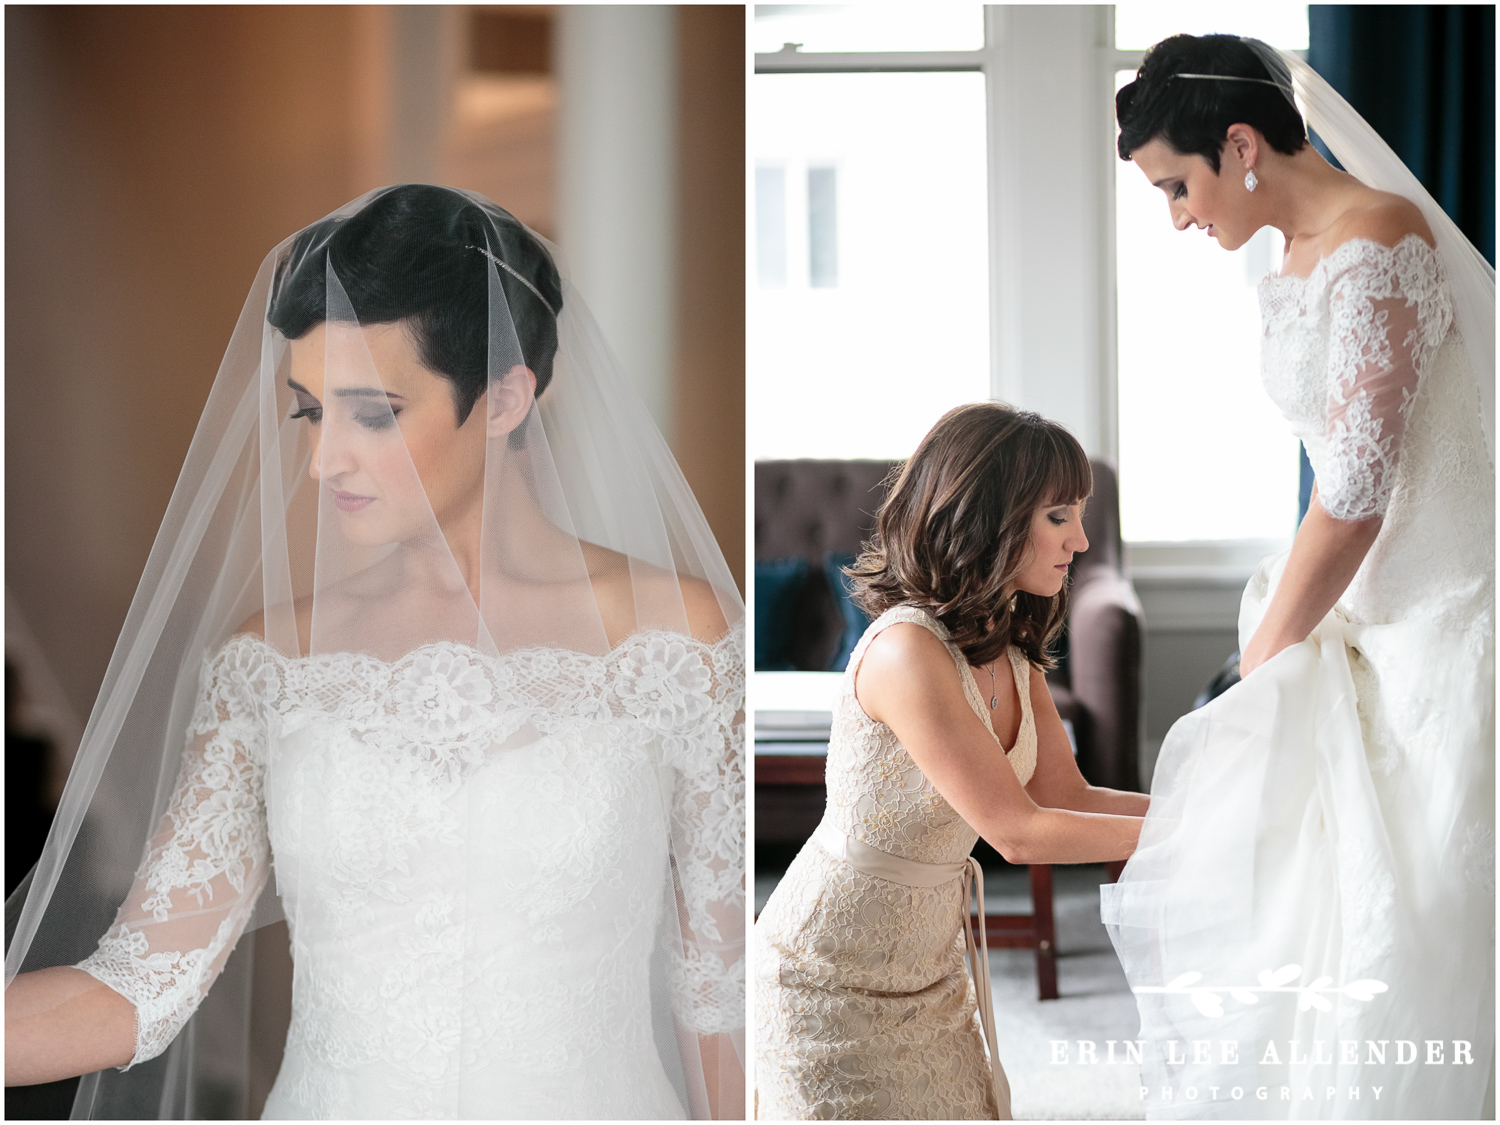 Bride_With_Blusher